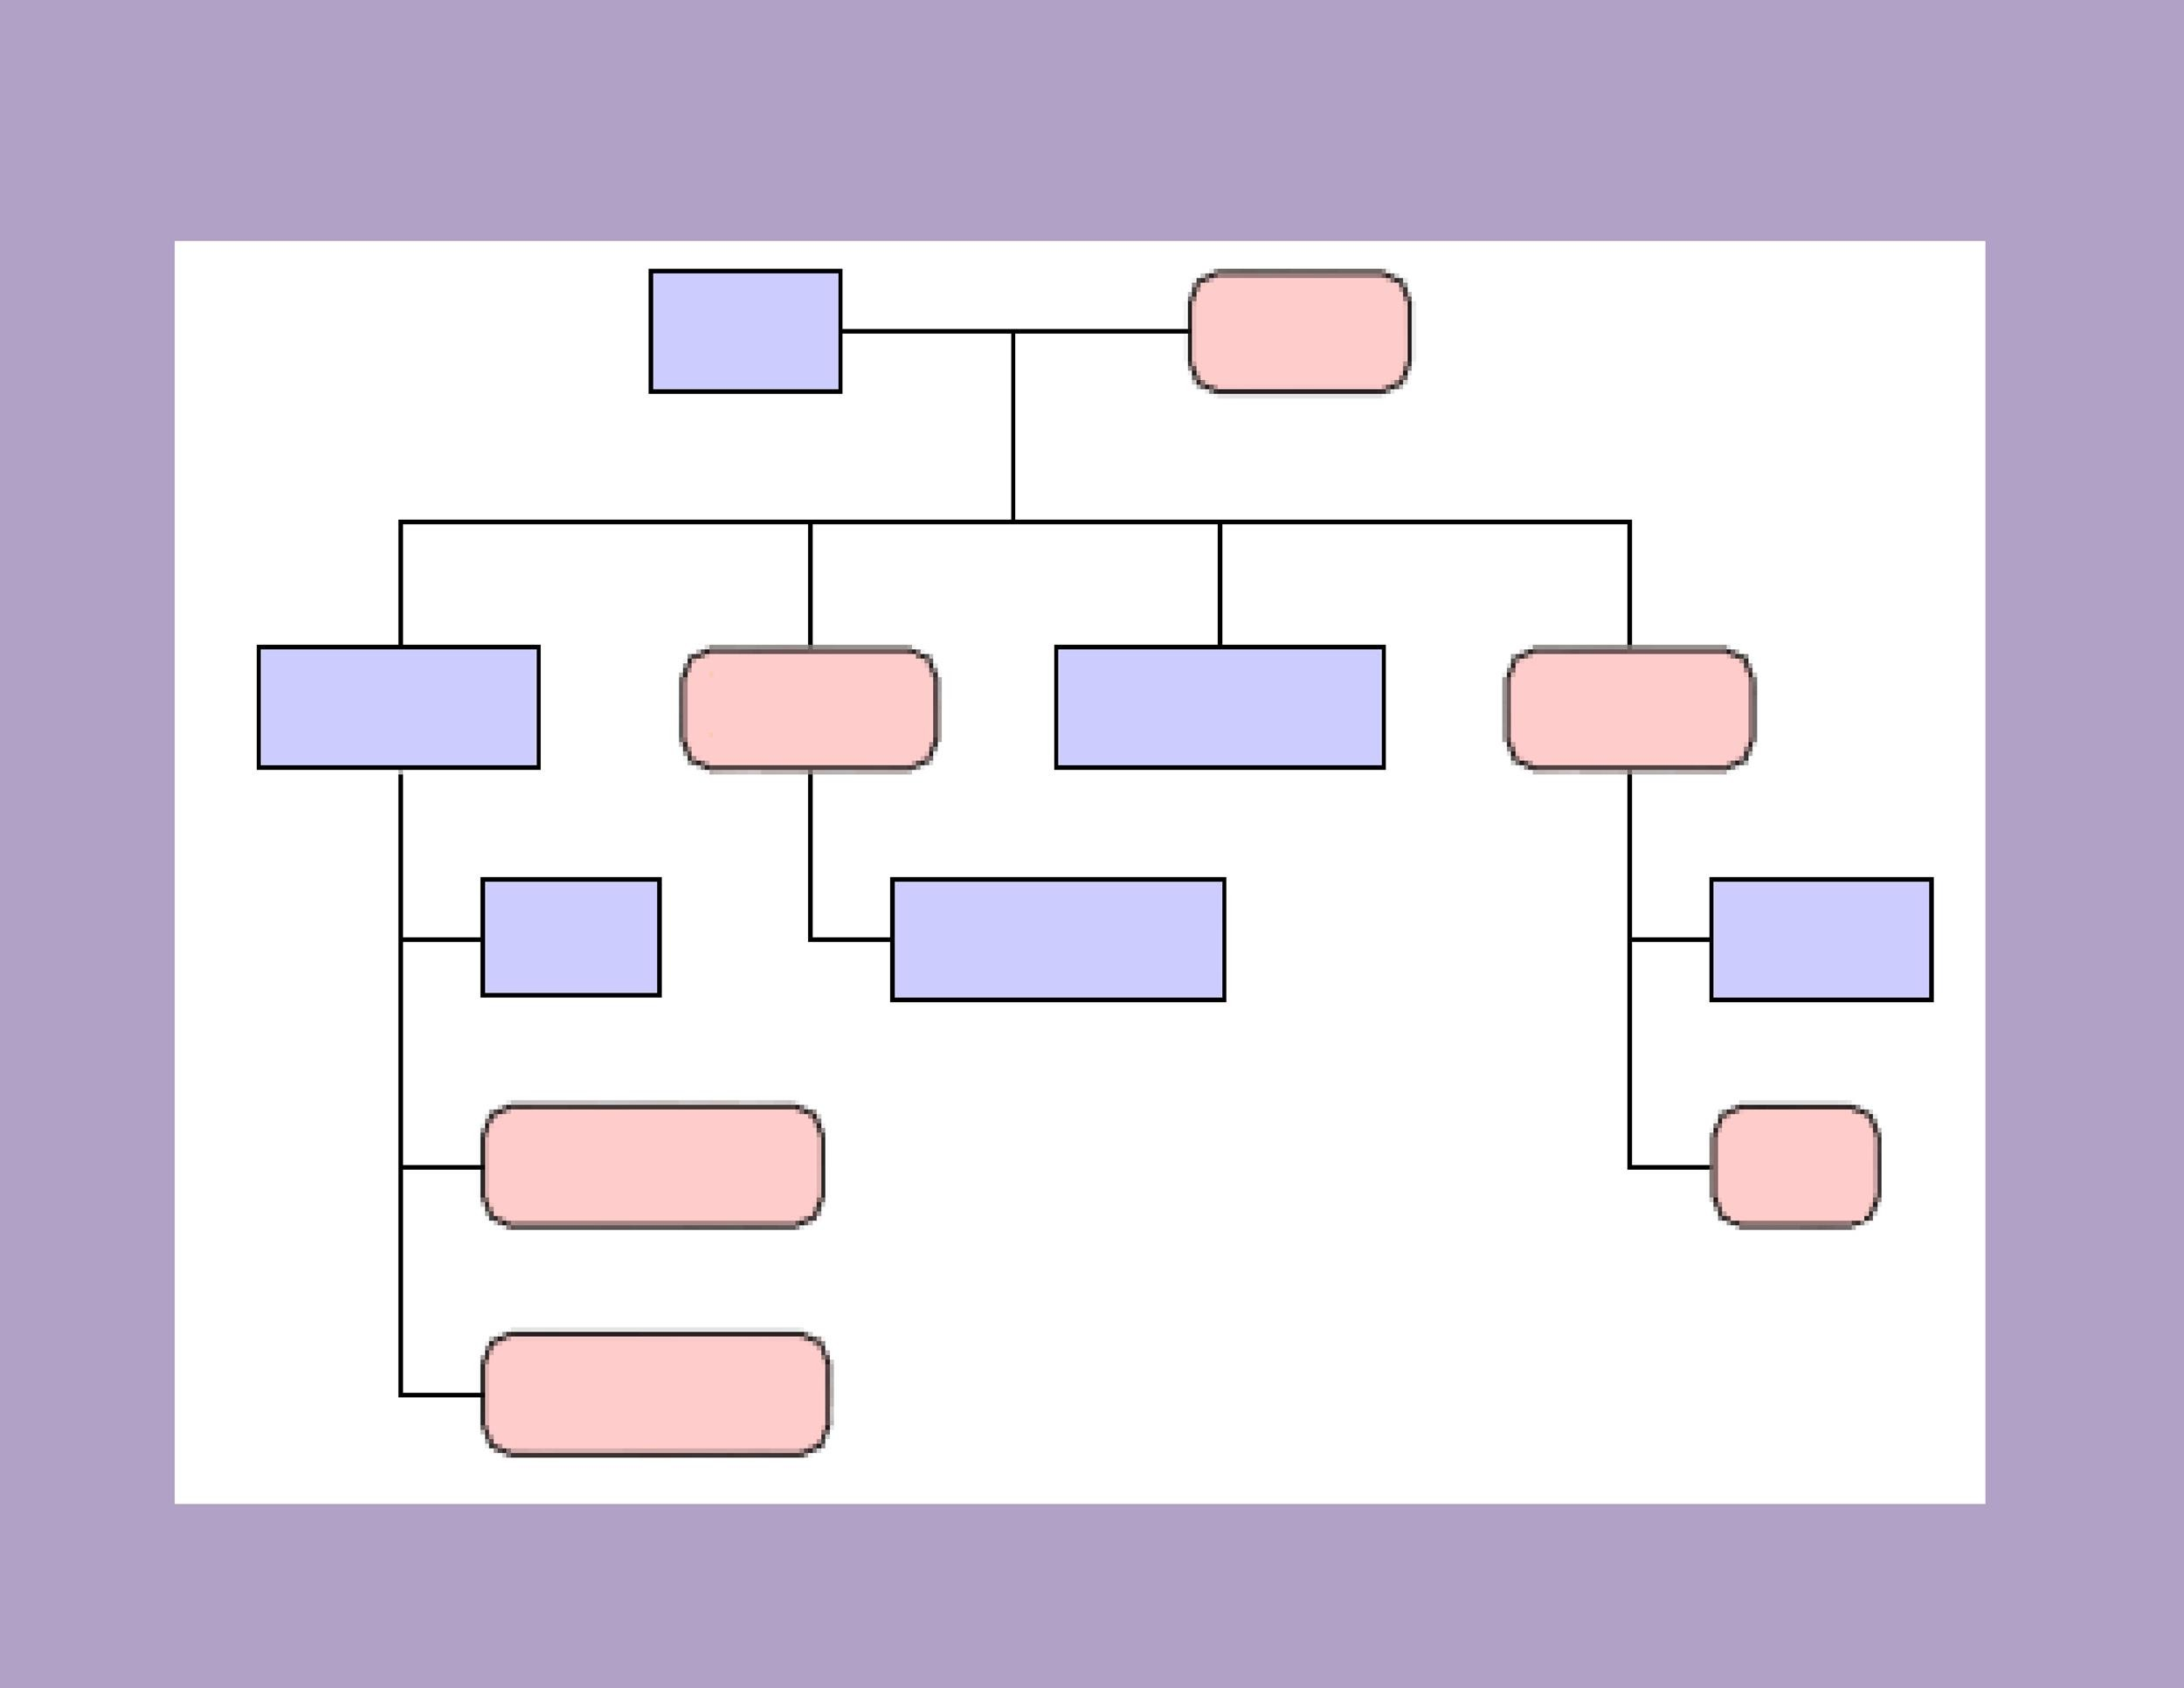 Free Genogram Template Free Genogram Software 31+ Genogram